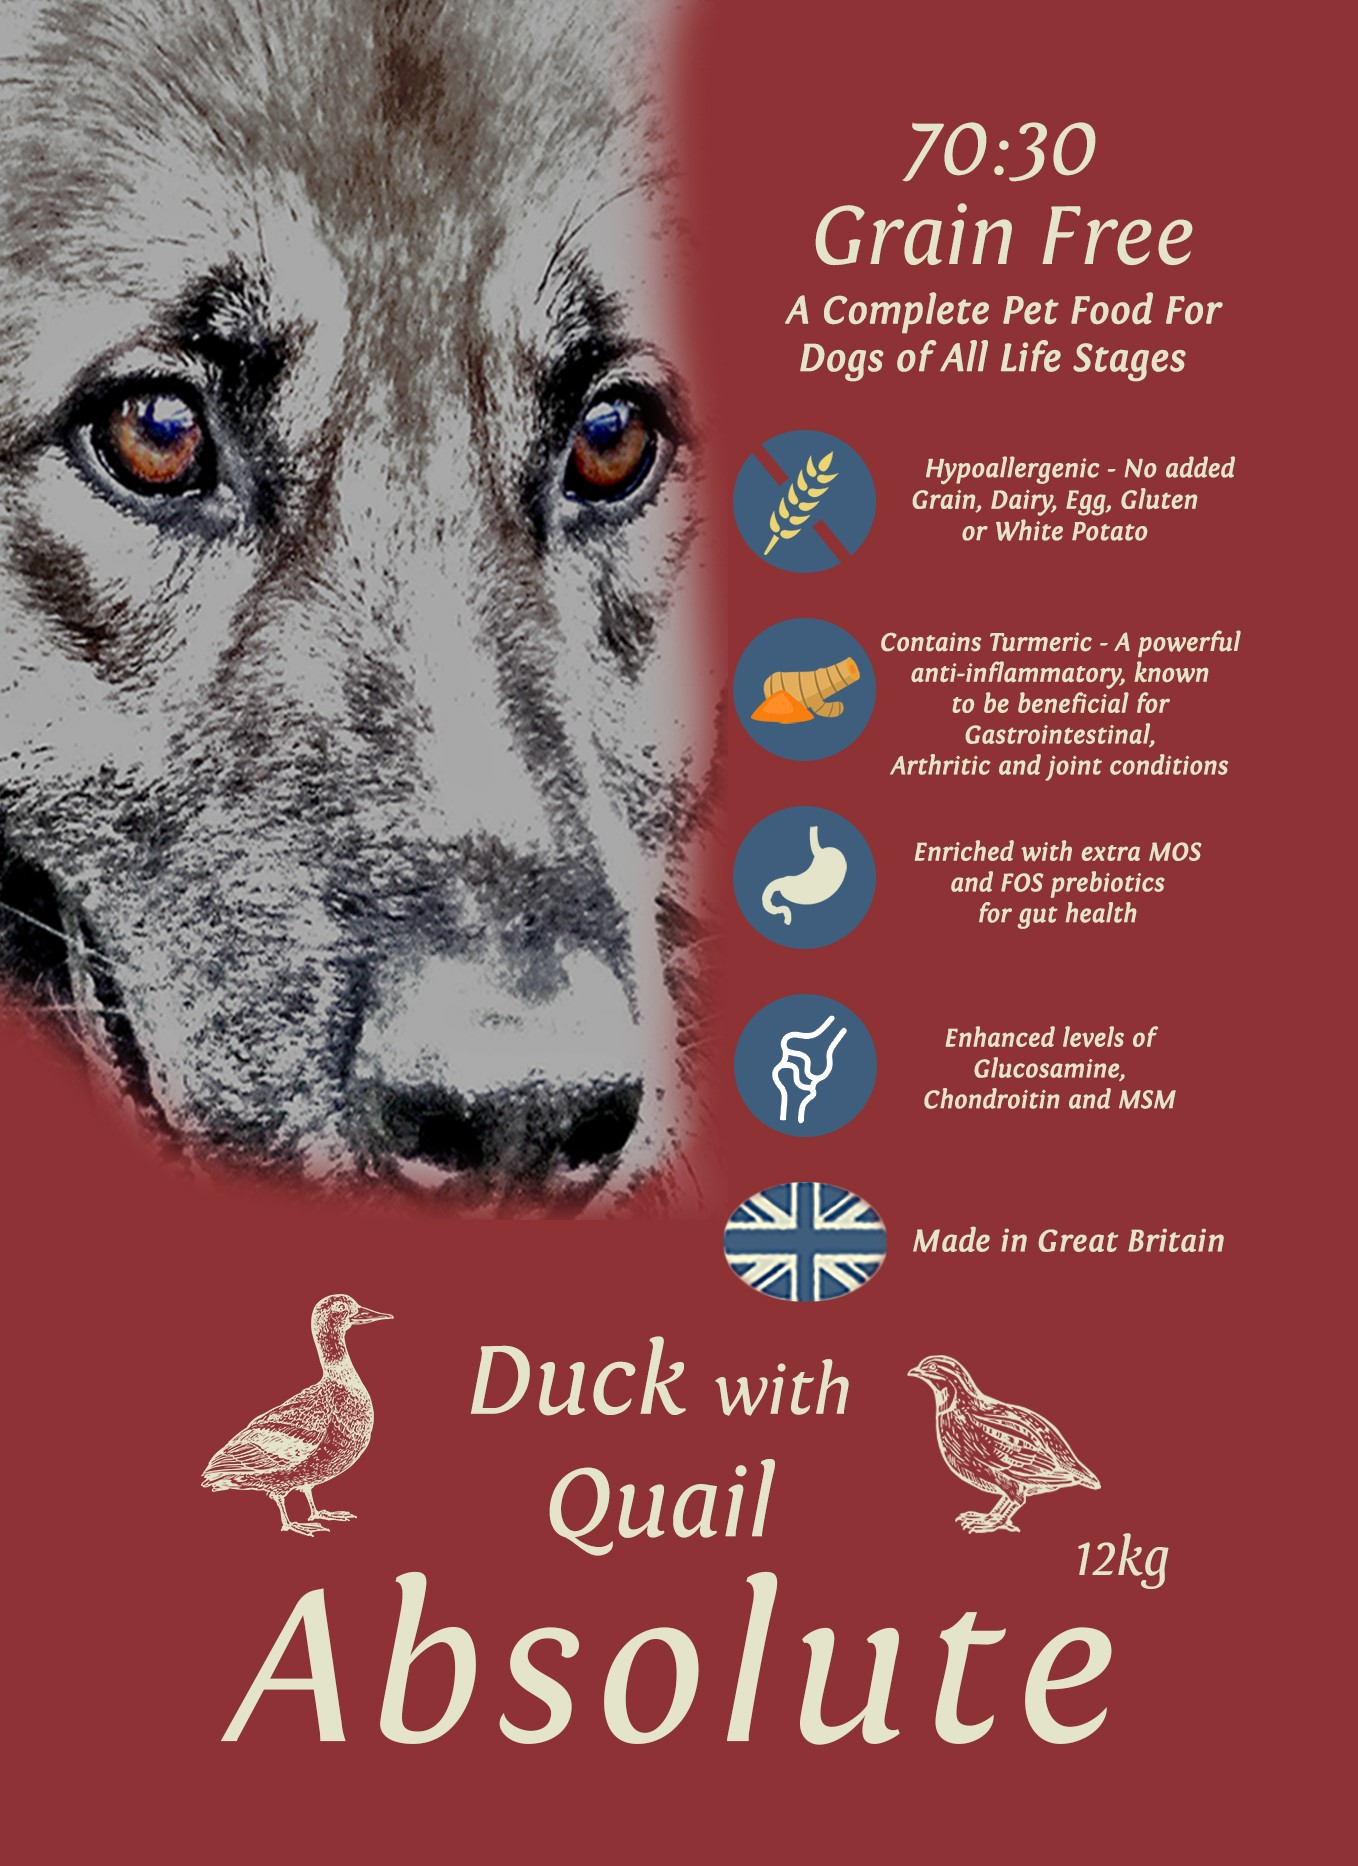 Grace 70/30 Absolute Duck with Quail 12kg Dog Food